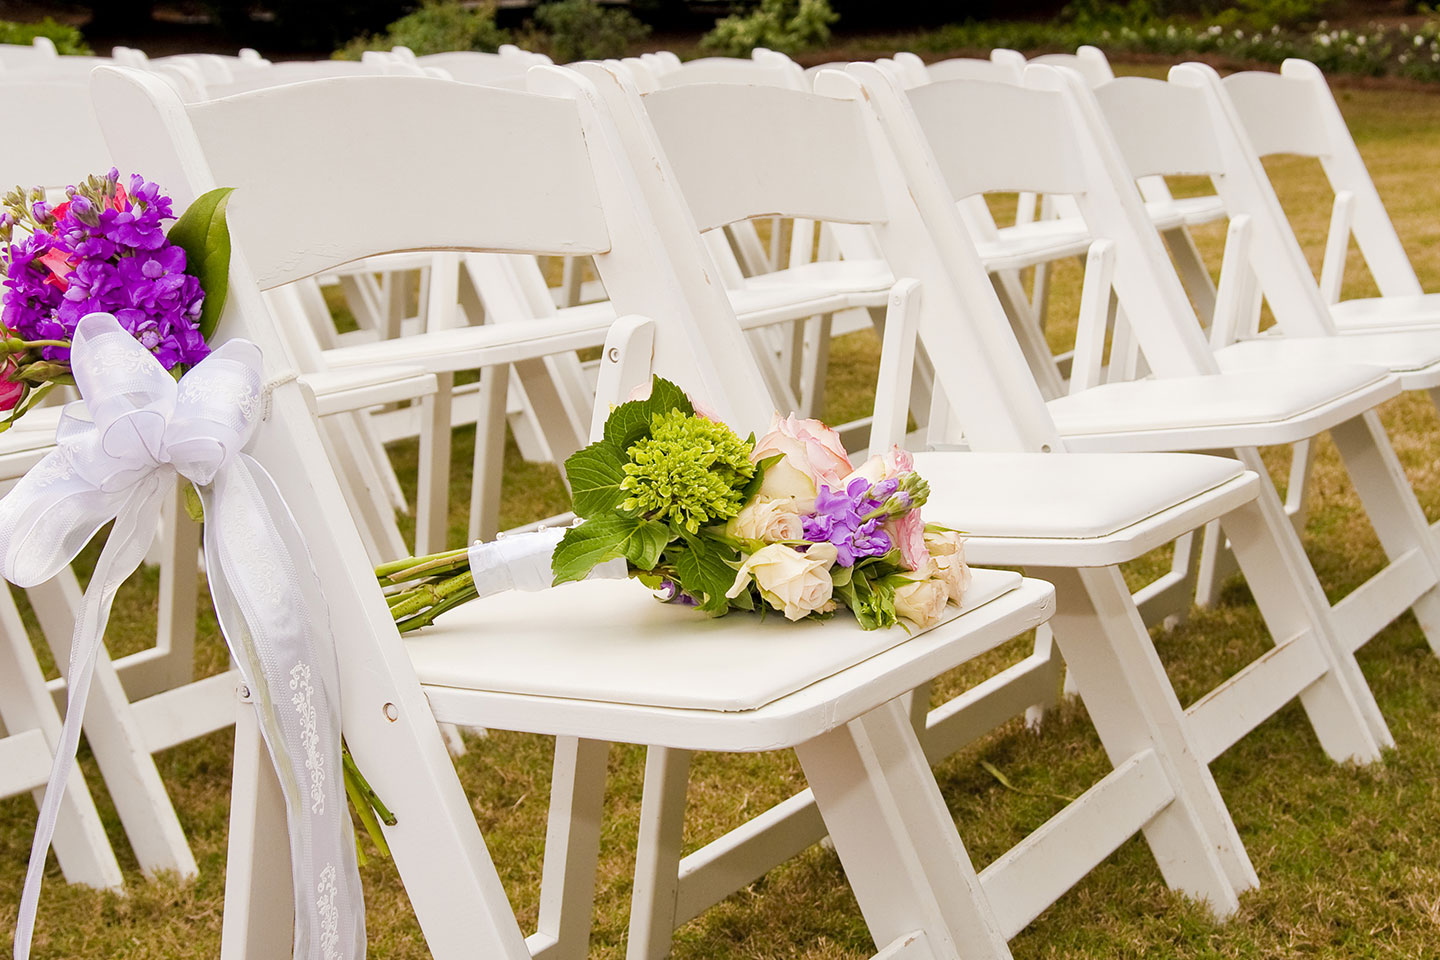 Ceremony chairs at our St. Augustine wedding venue